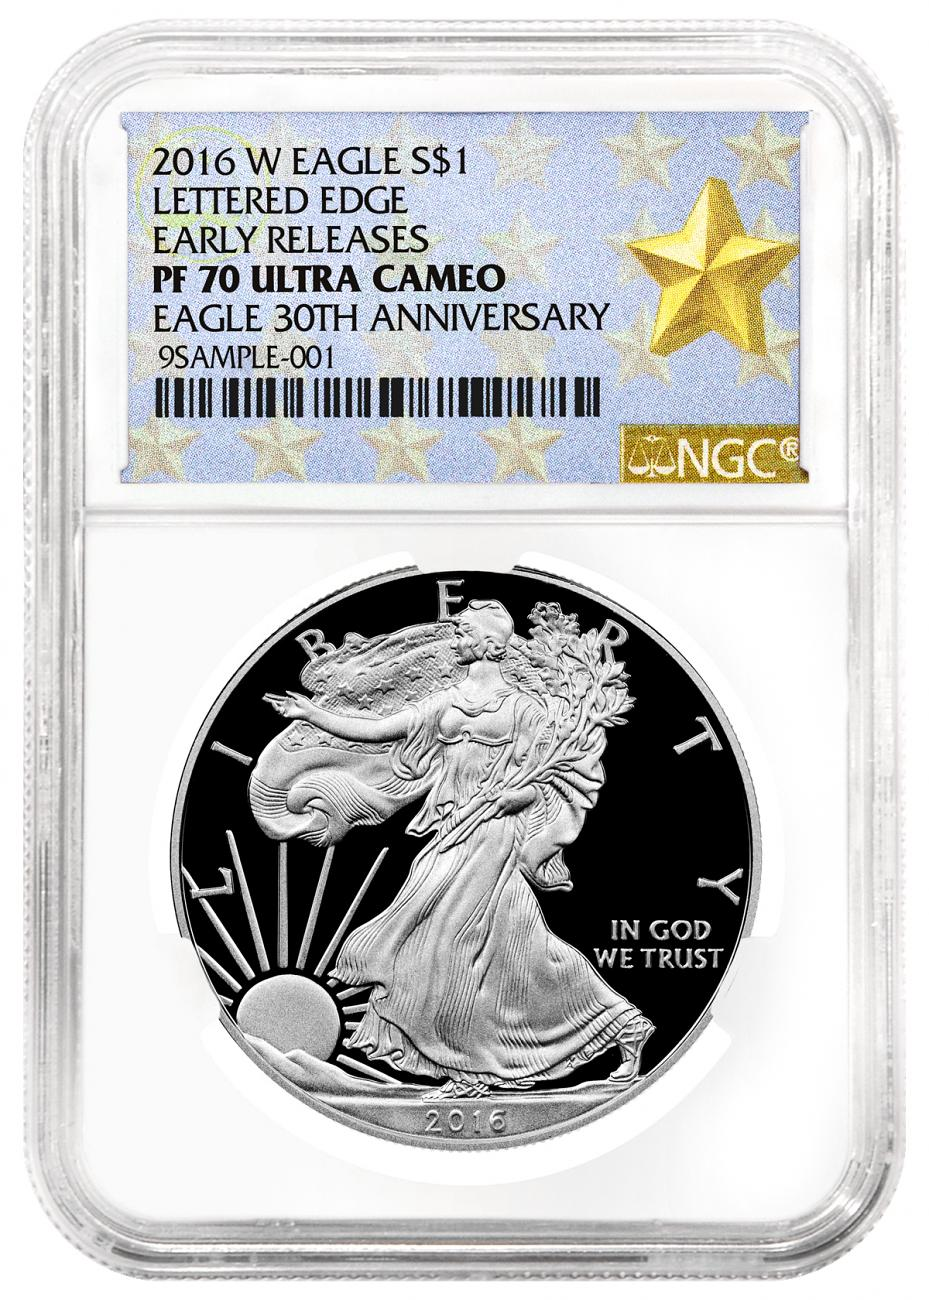 2016-W Proof American Silver Eagle - NGC PF70 UC Early Releases (West Point Star Label)